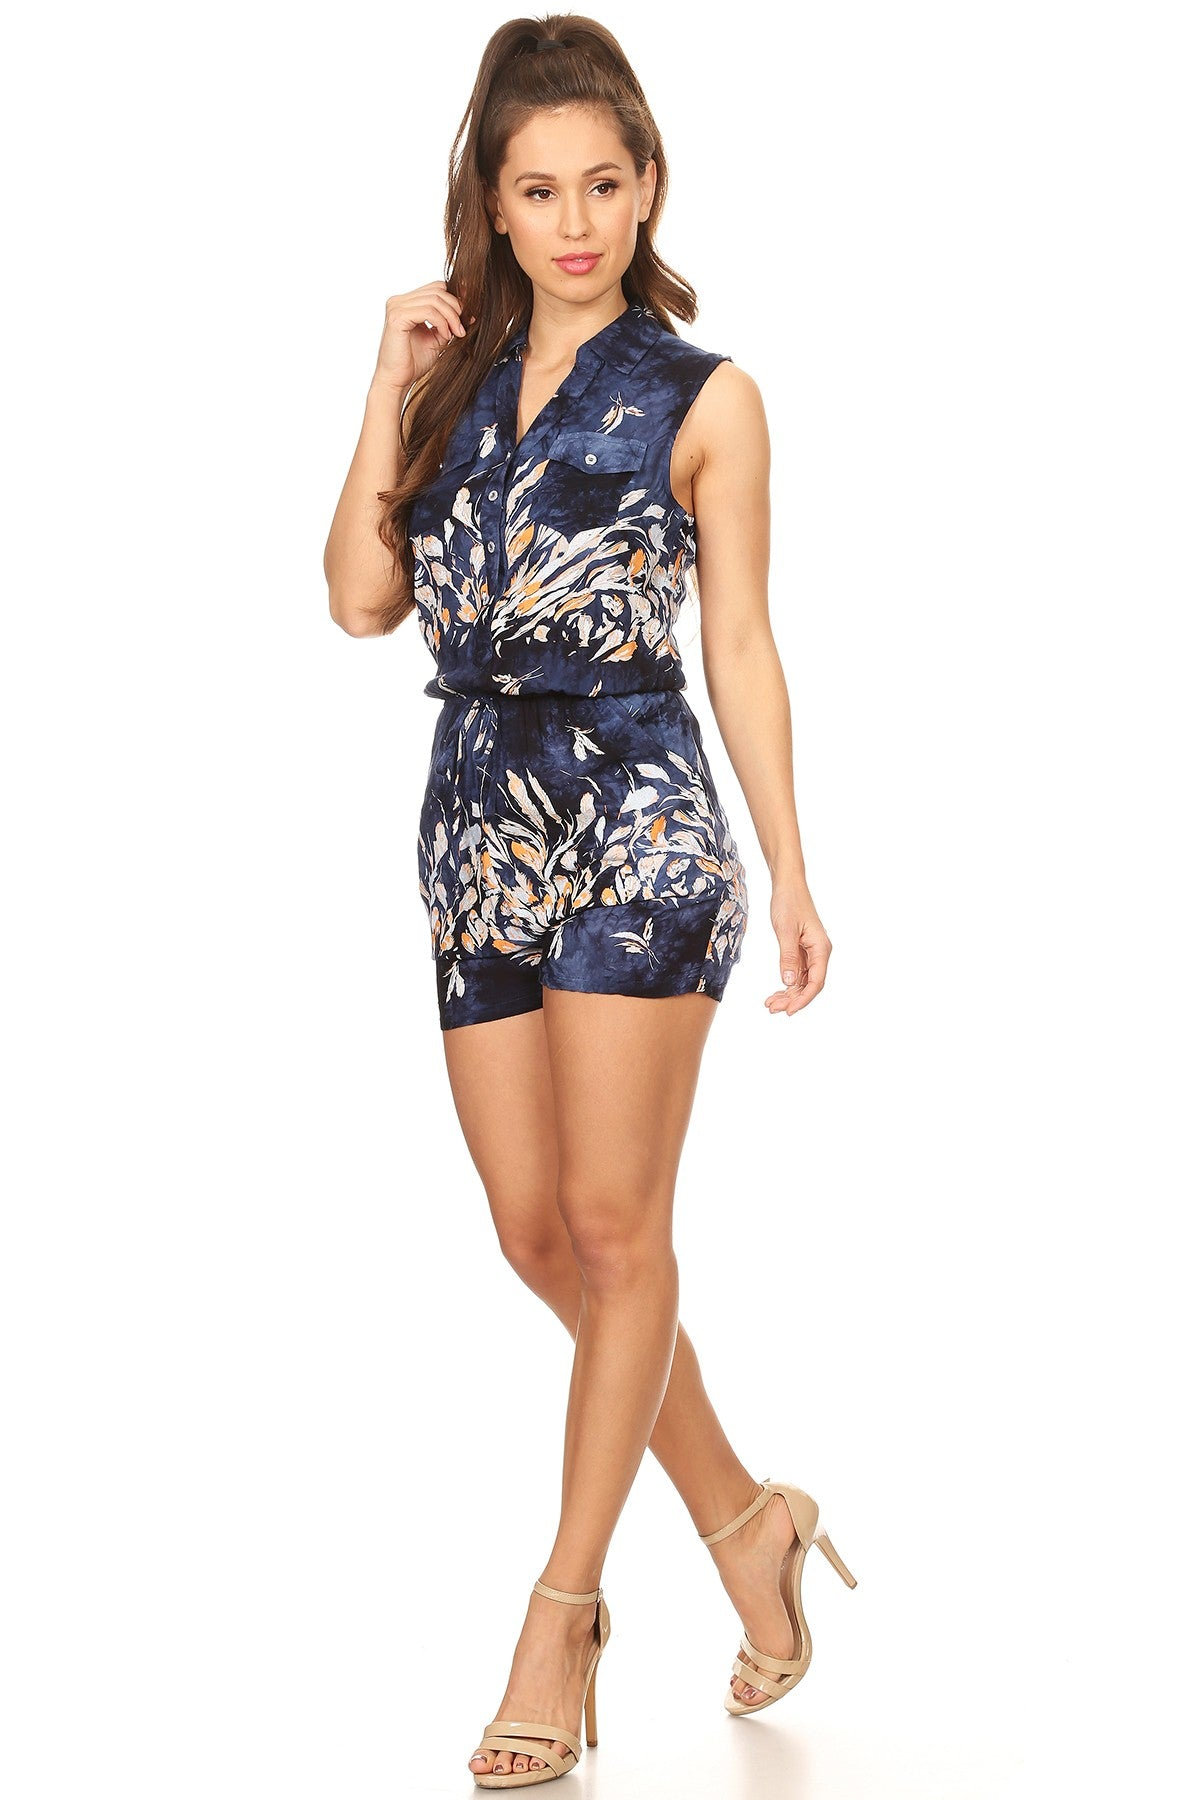 Floral printed, sleeveless romper in a fitted style